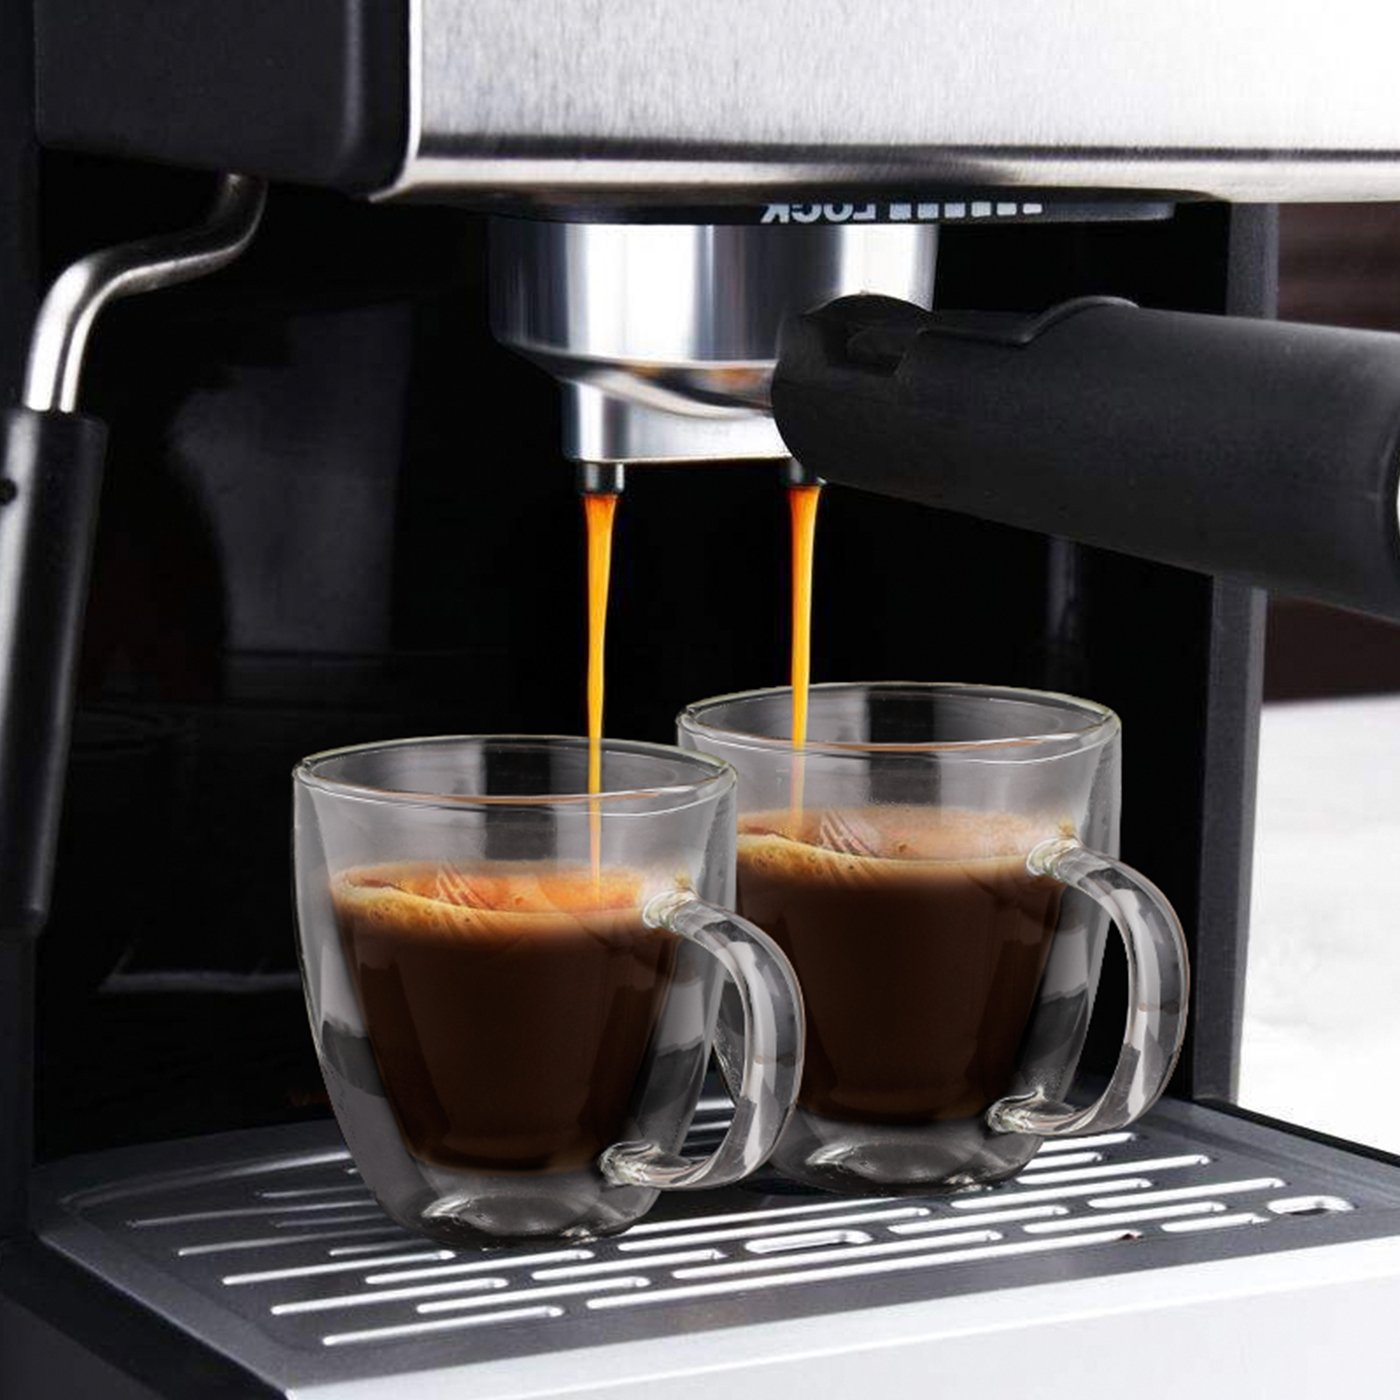 Aozita Glasses Espresso Mugs with Spoons, 5.4-Ounce Cappuccino/Latte Cups, Double Walled Thermo Espresso Cups, Set of 2 by Aozita (Image #4)